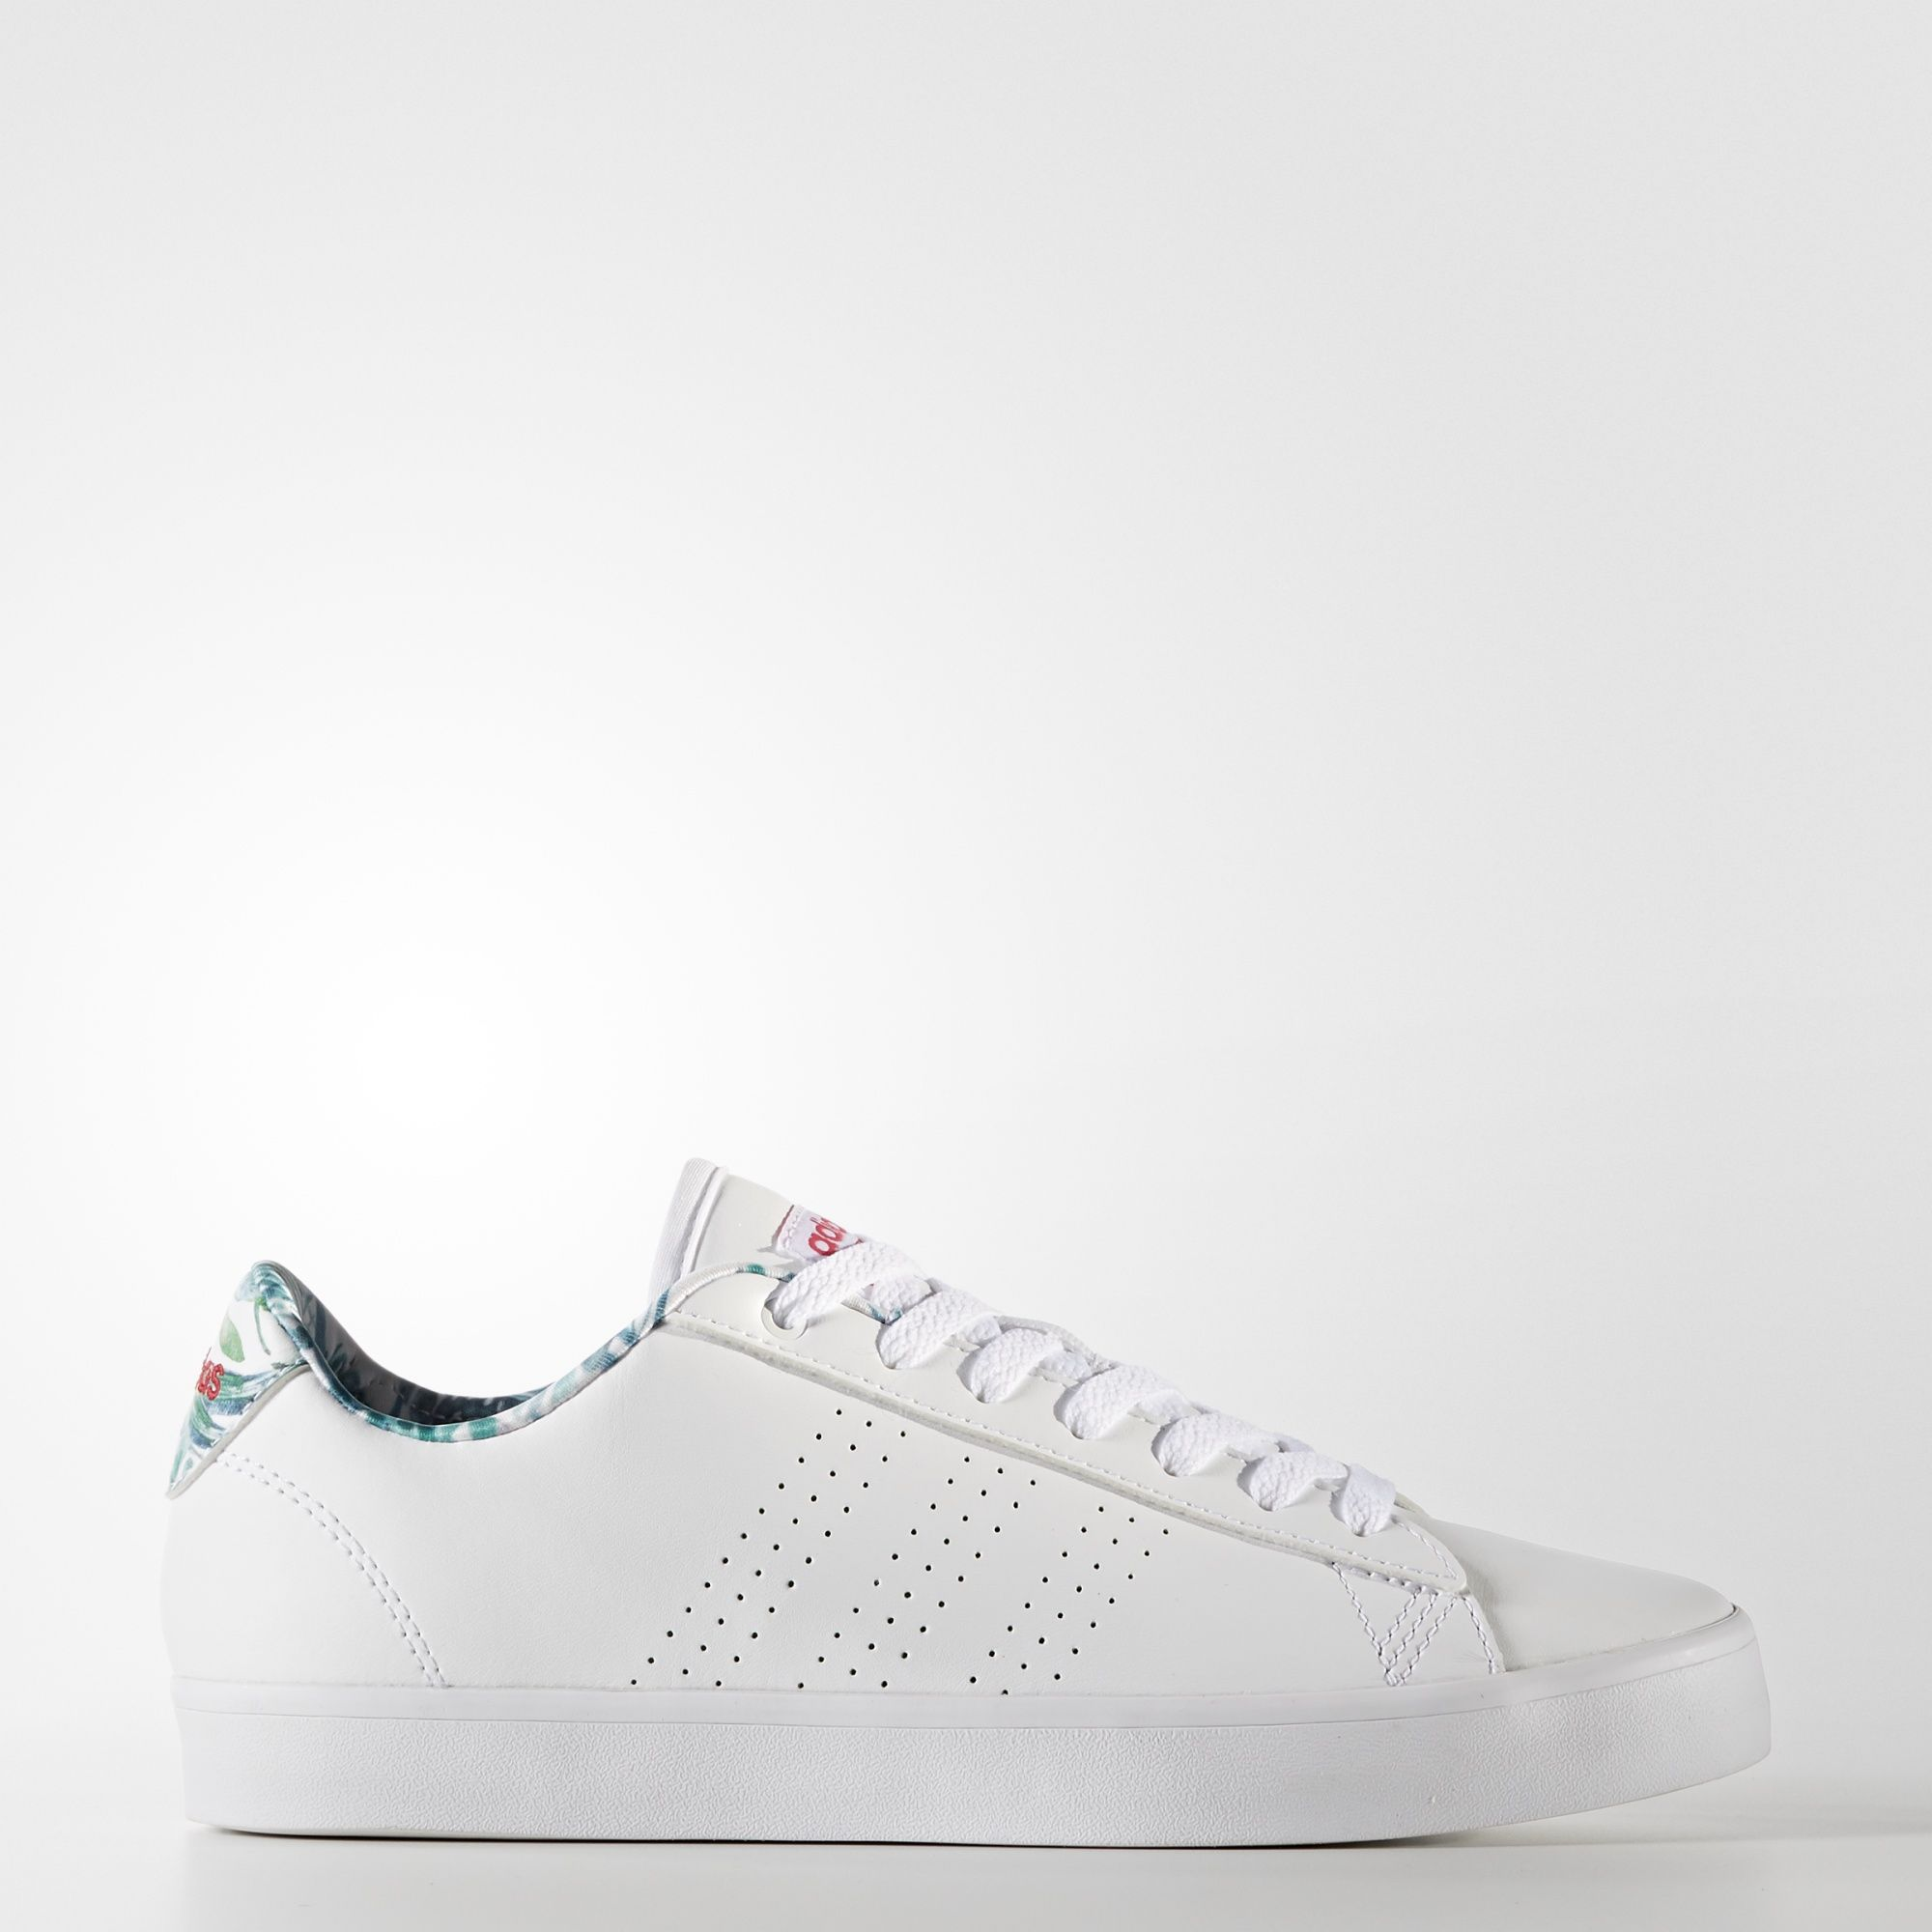 adidas cloudfoam femme, adidas - Chaussure Cloudfoam Daily QT Clean Footwear White/Energy Pink  CG5756